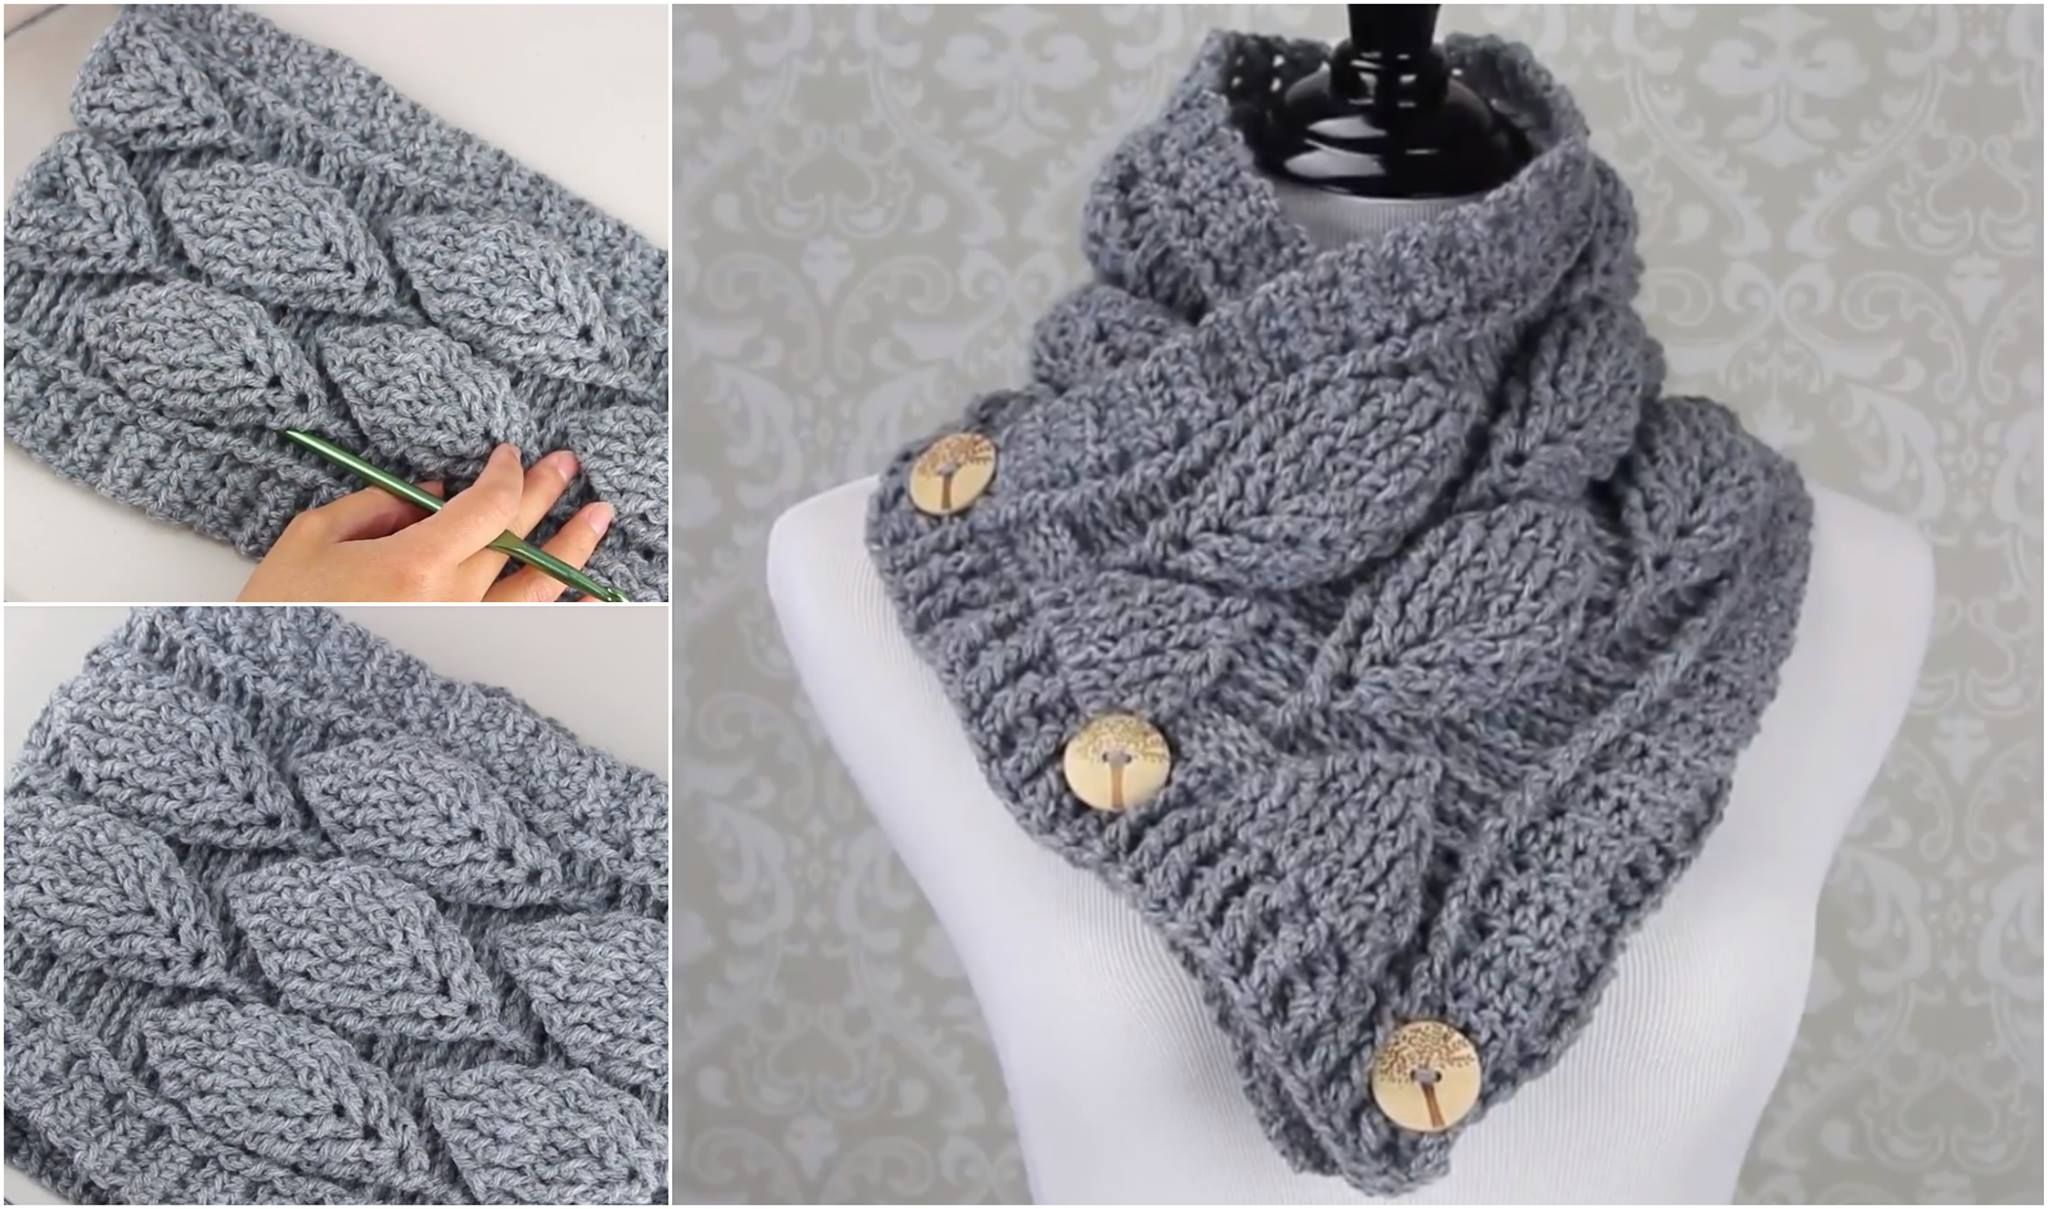 Crochet Leaf Stitch Cowl Free Pattern | Knitting | Pinterest ...